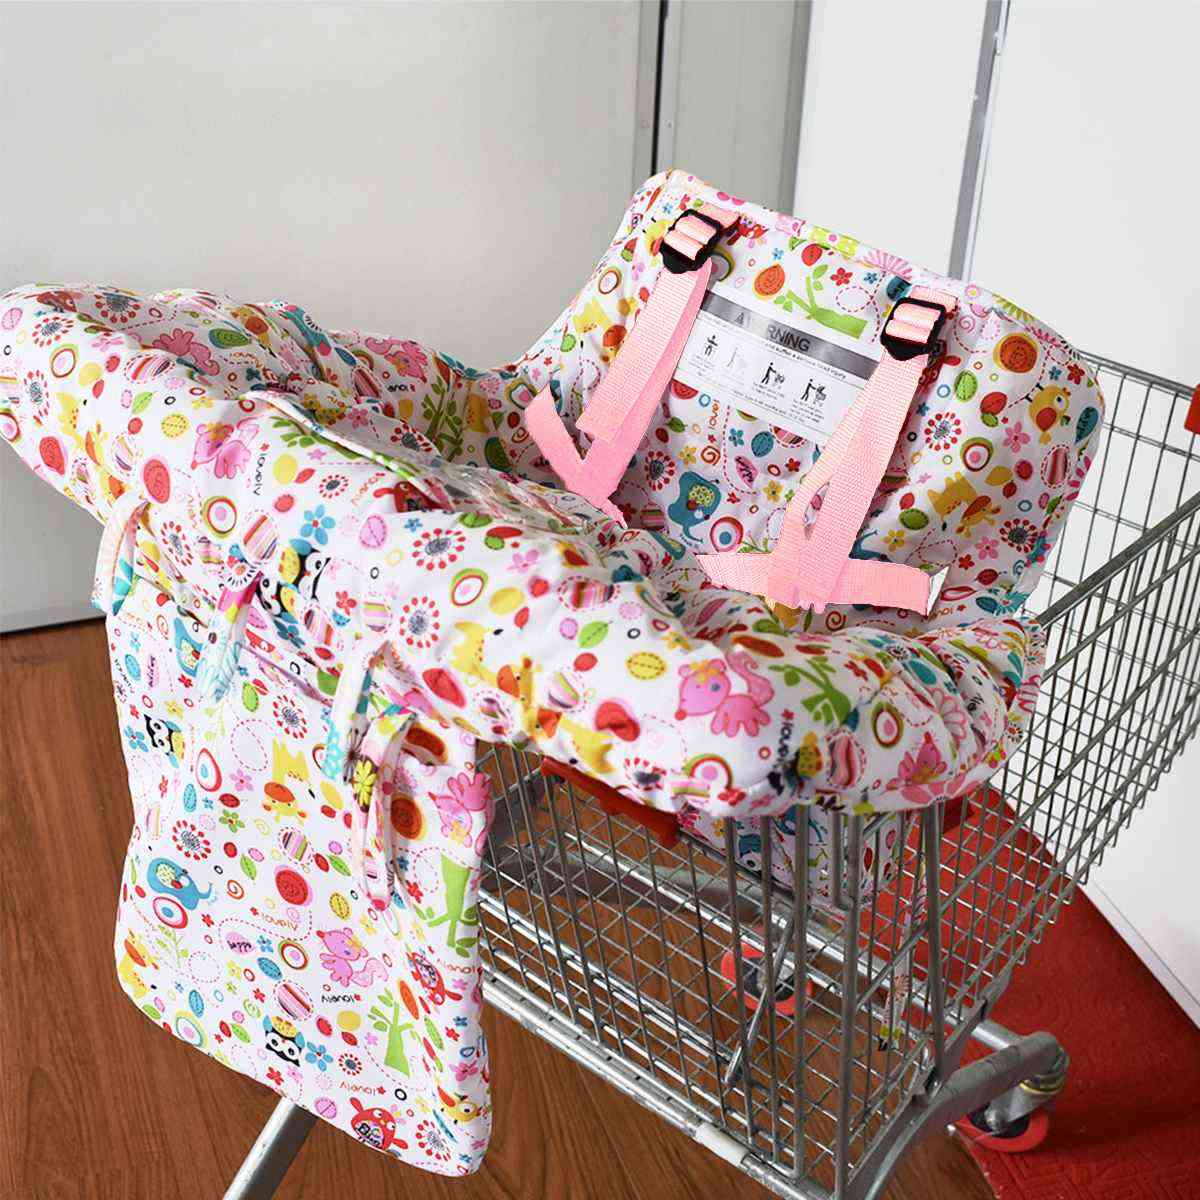 Shopping Cart Covers, Protection Baby, Supermarket Foldable Bag, Dining Highchair Cover, Kids Cushion, Mat For Baby Infant